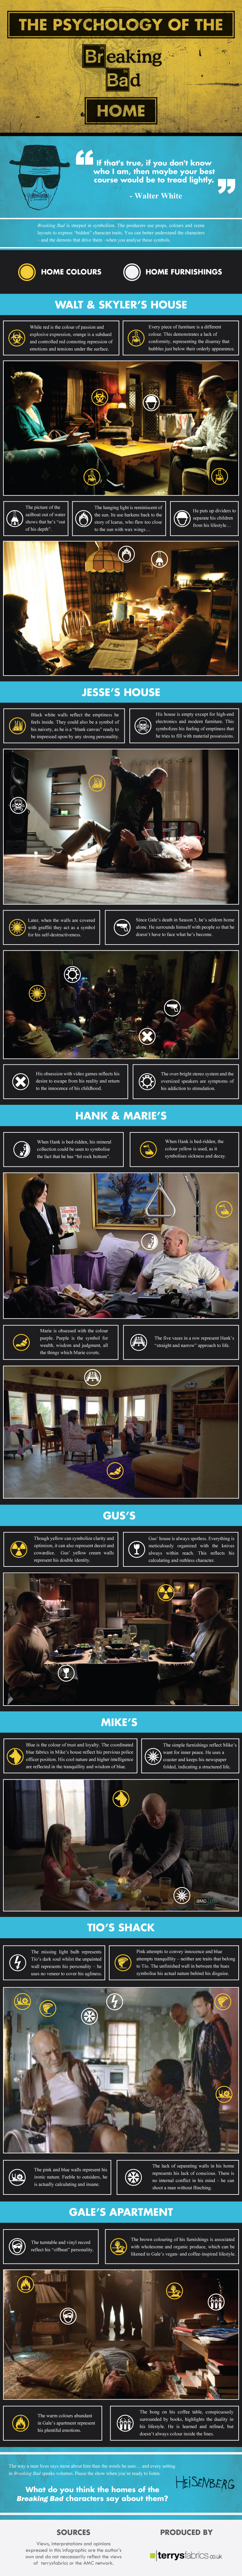 The Psychology of the Breaking Bad Home